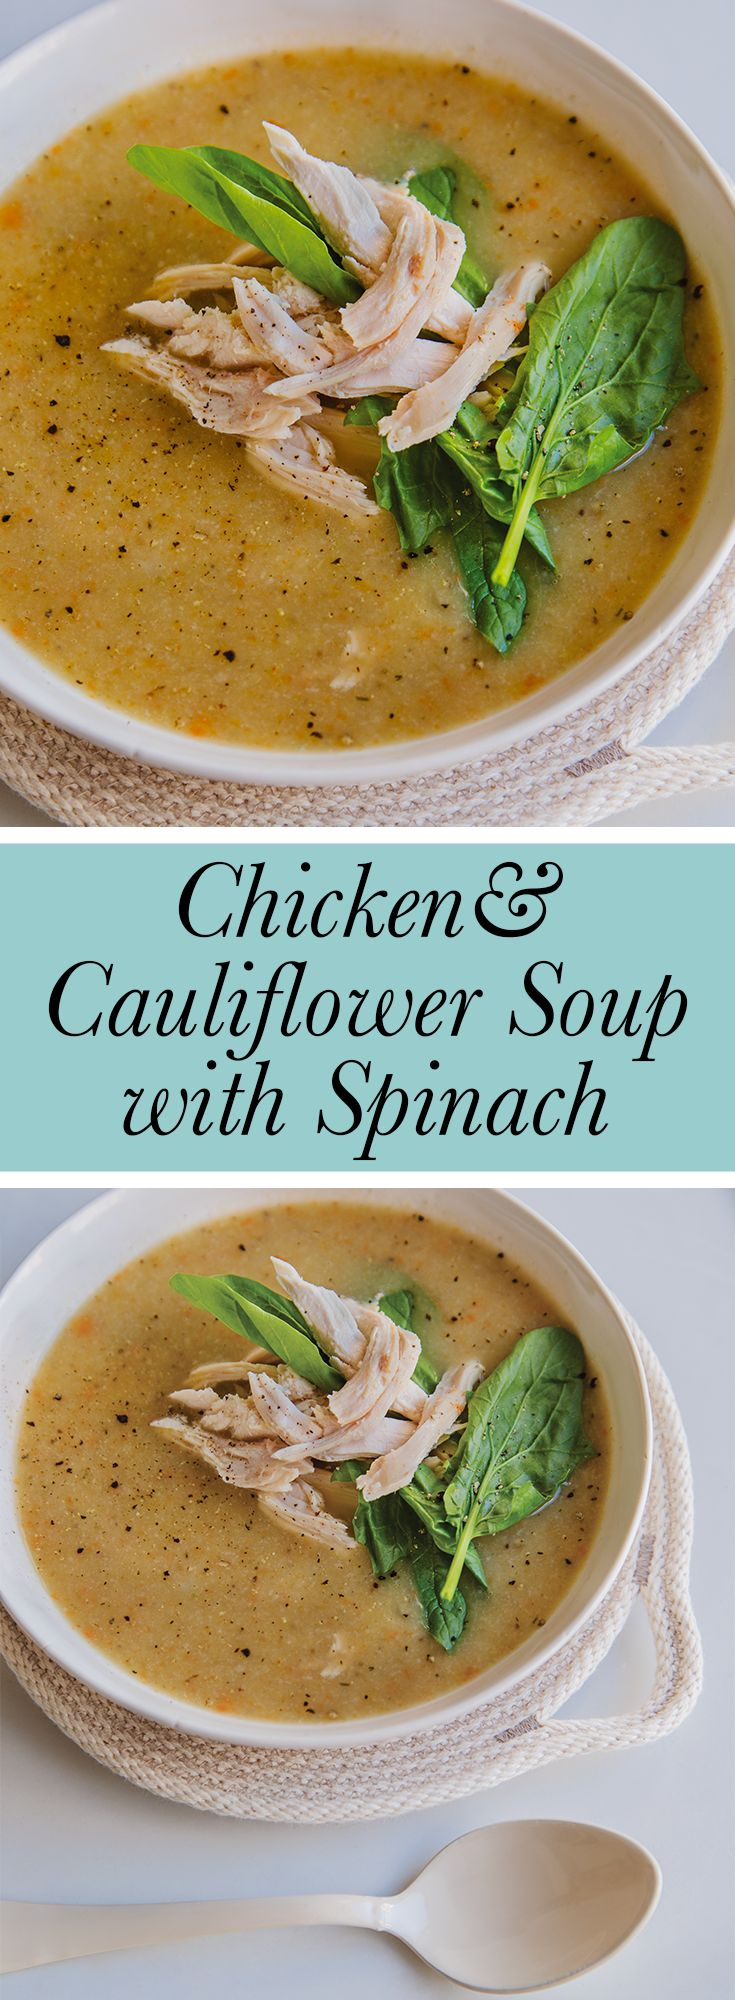 So good and creamy, without any cream! A healthy soup for a weeknight or for lunch!